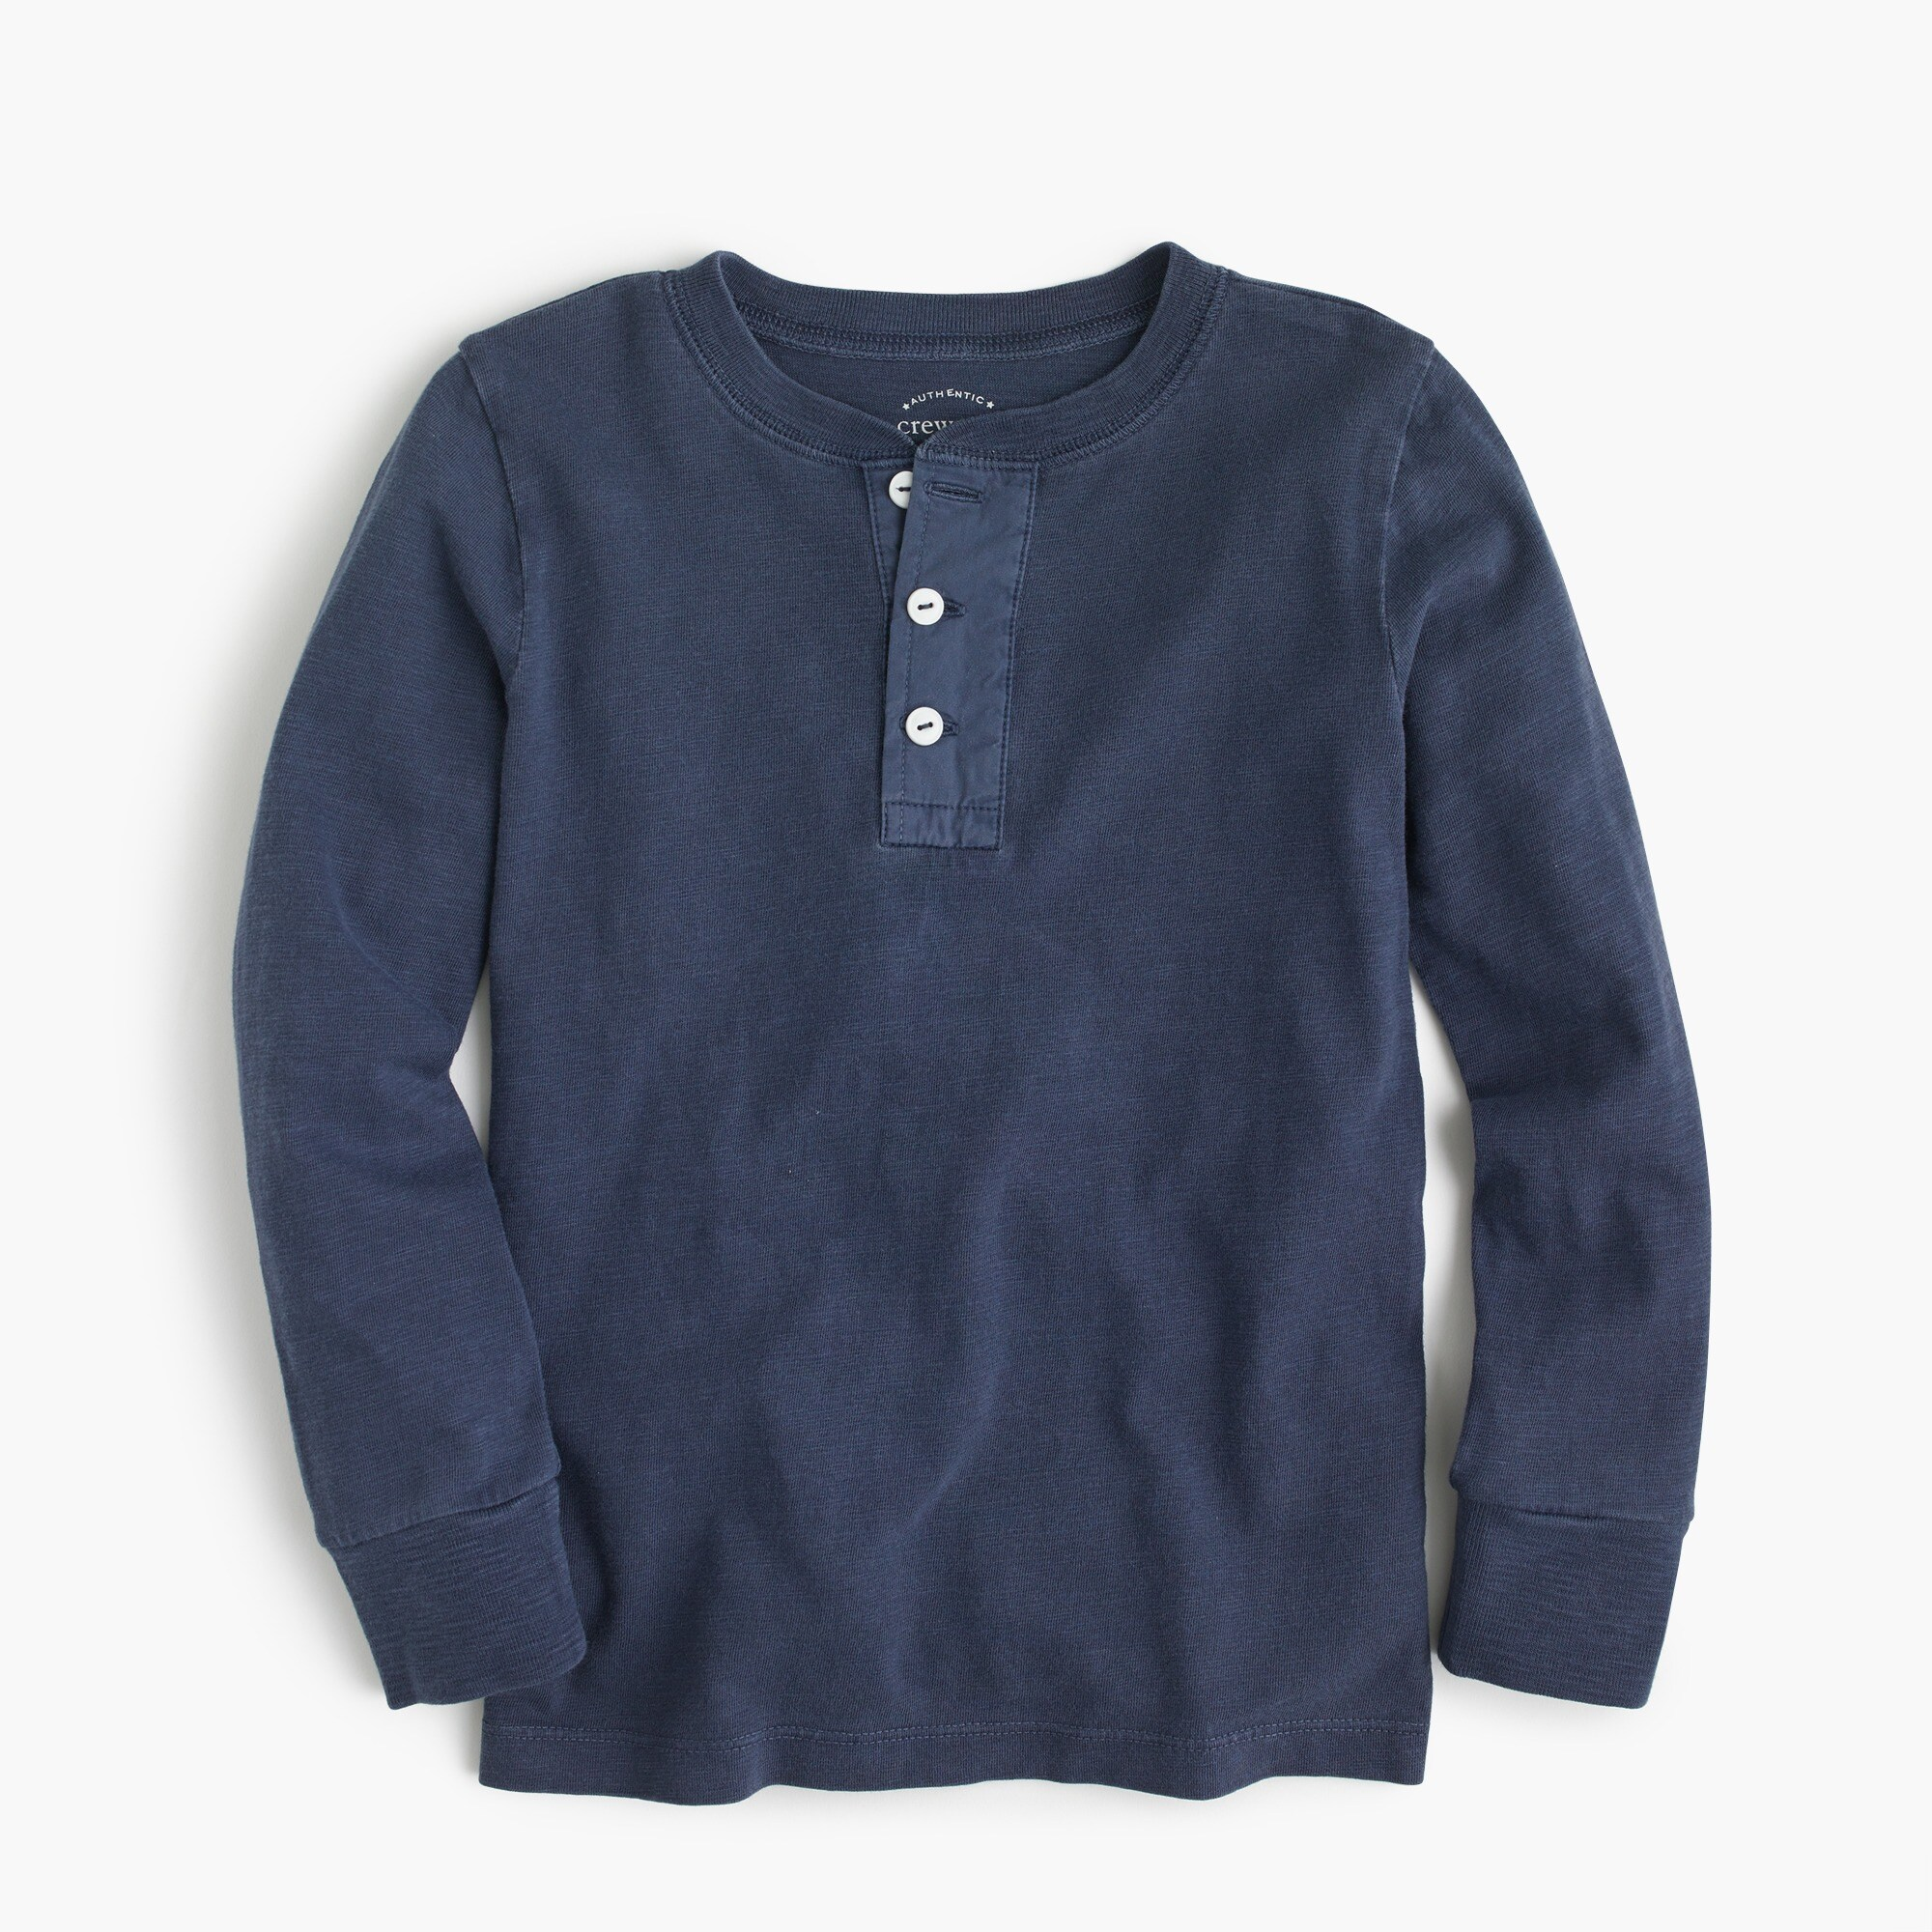 Boys' long-sleeve garment-dyed henley shirt